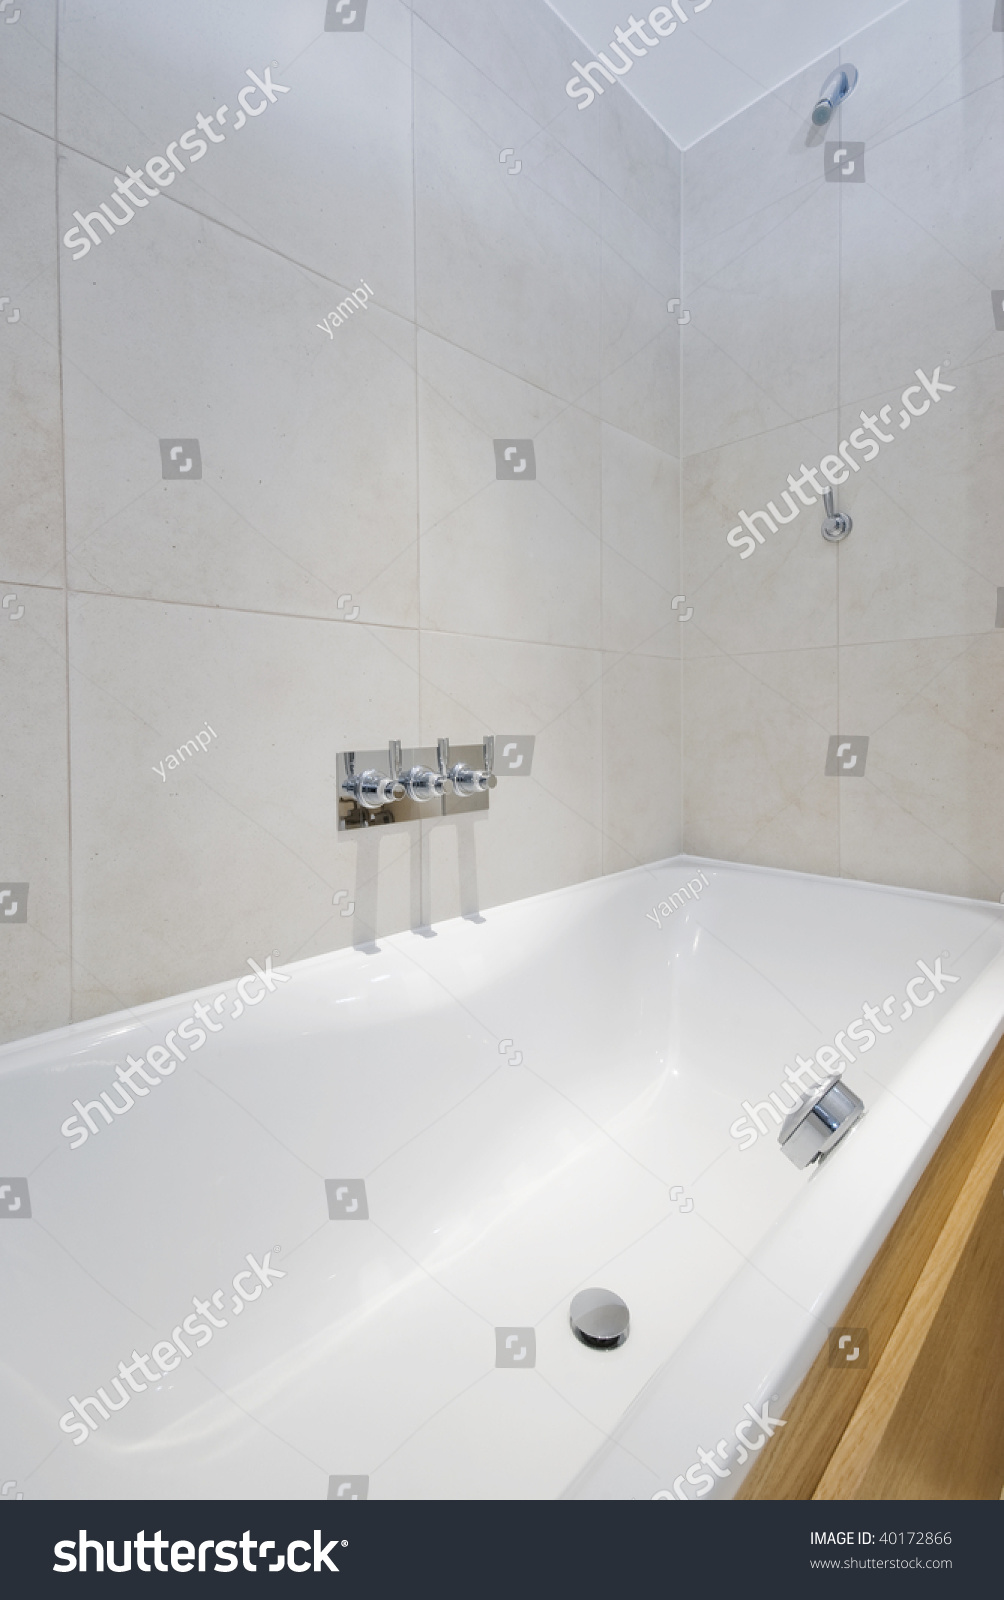 Contemporary Bath Tub Shower Attachment Wall Stock Photo (Safe to ...